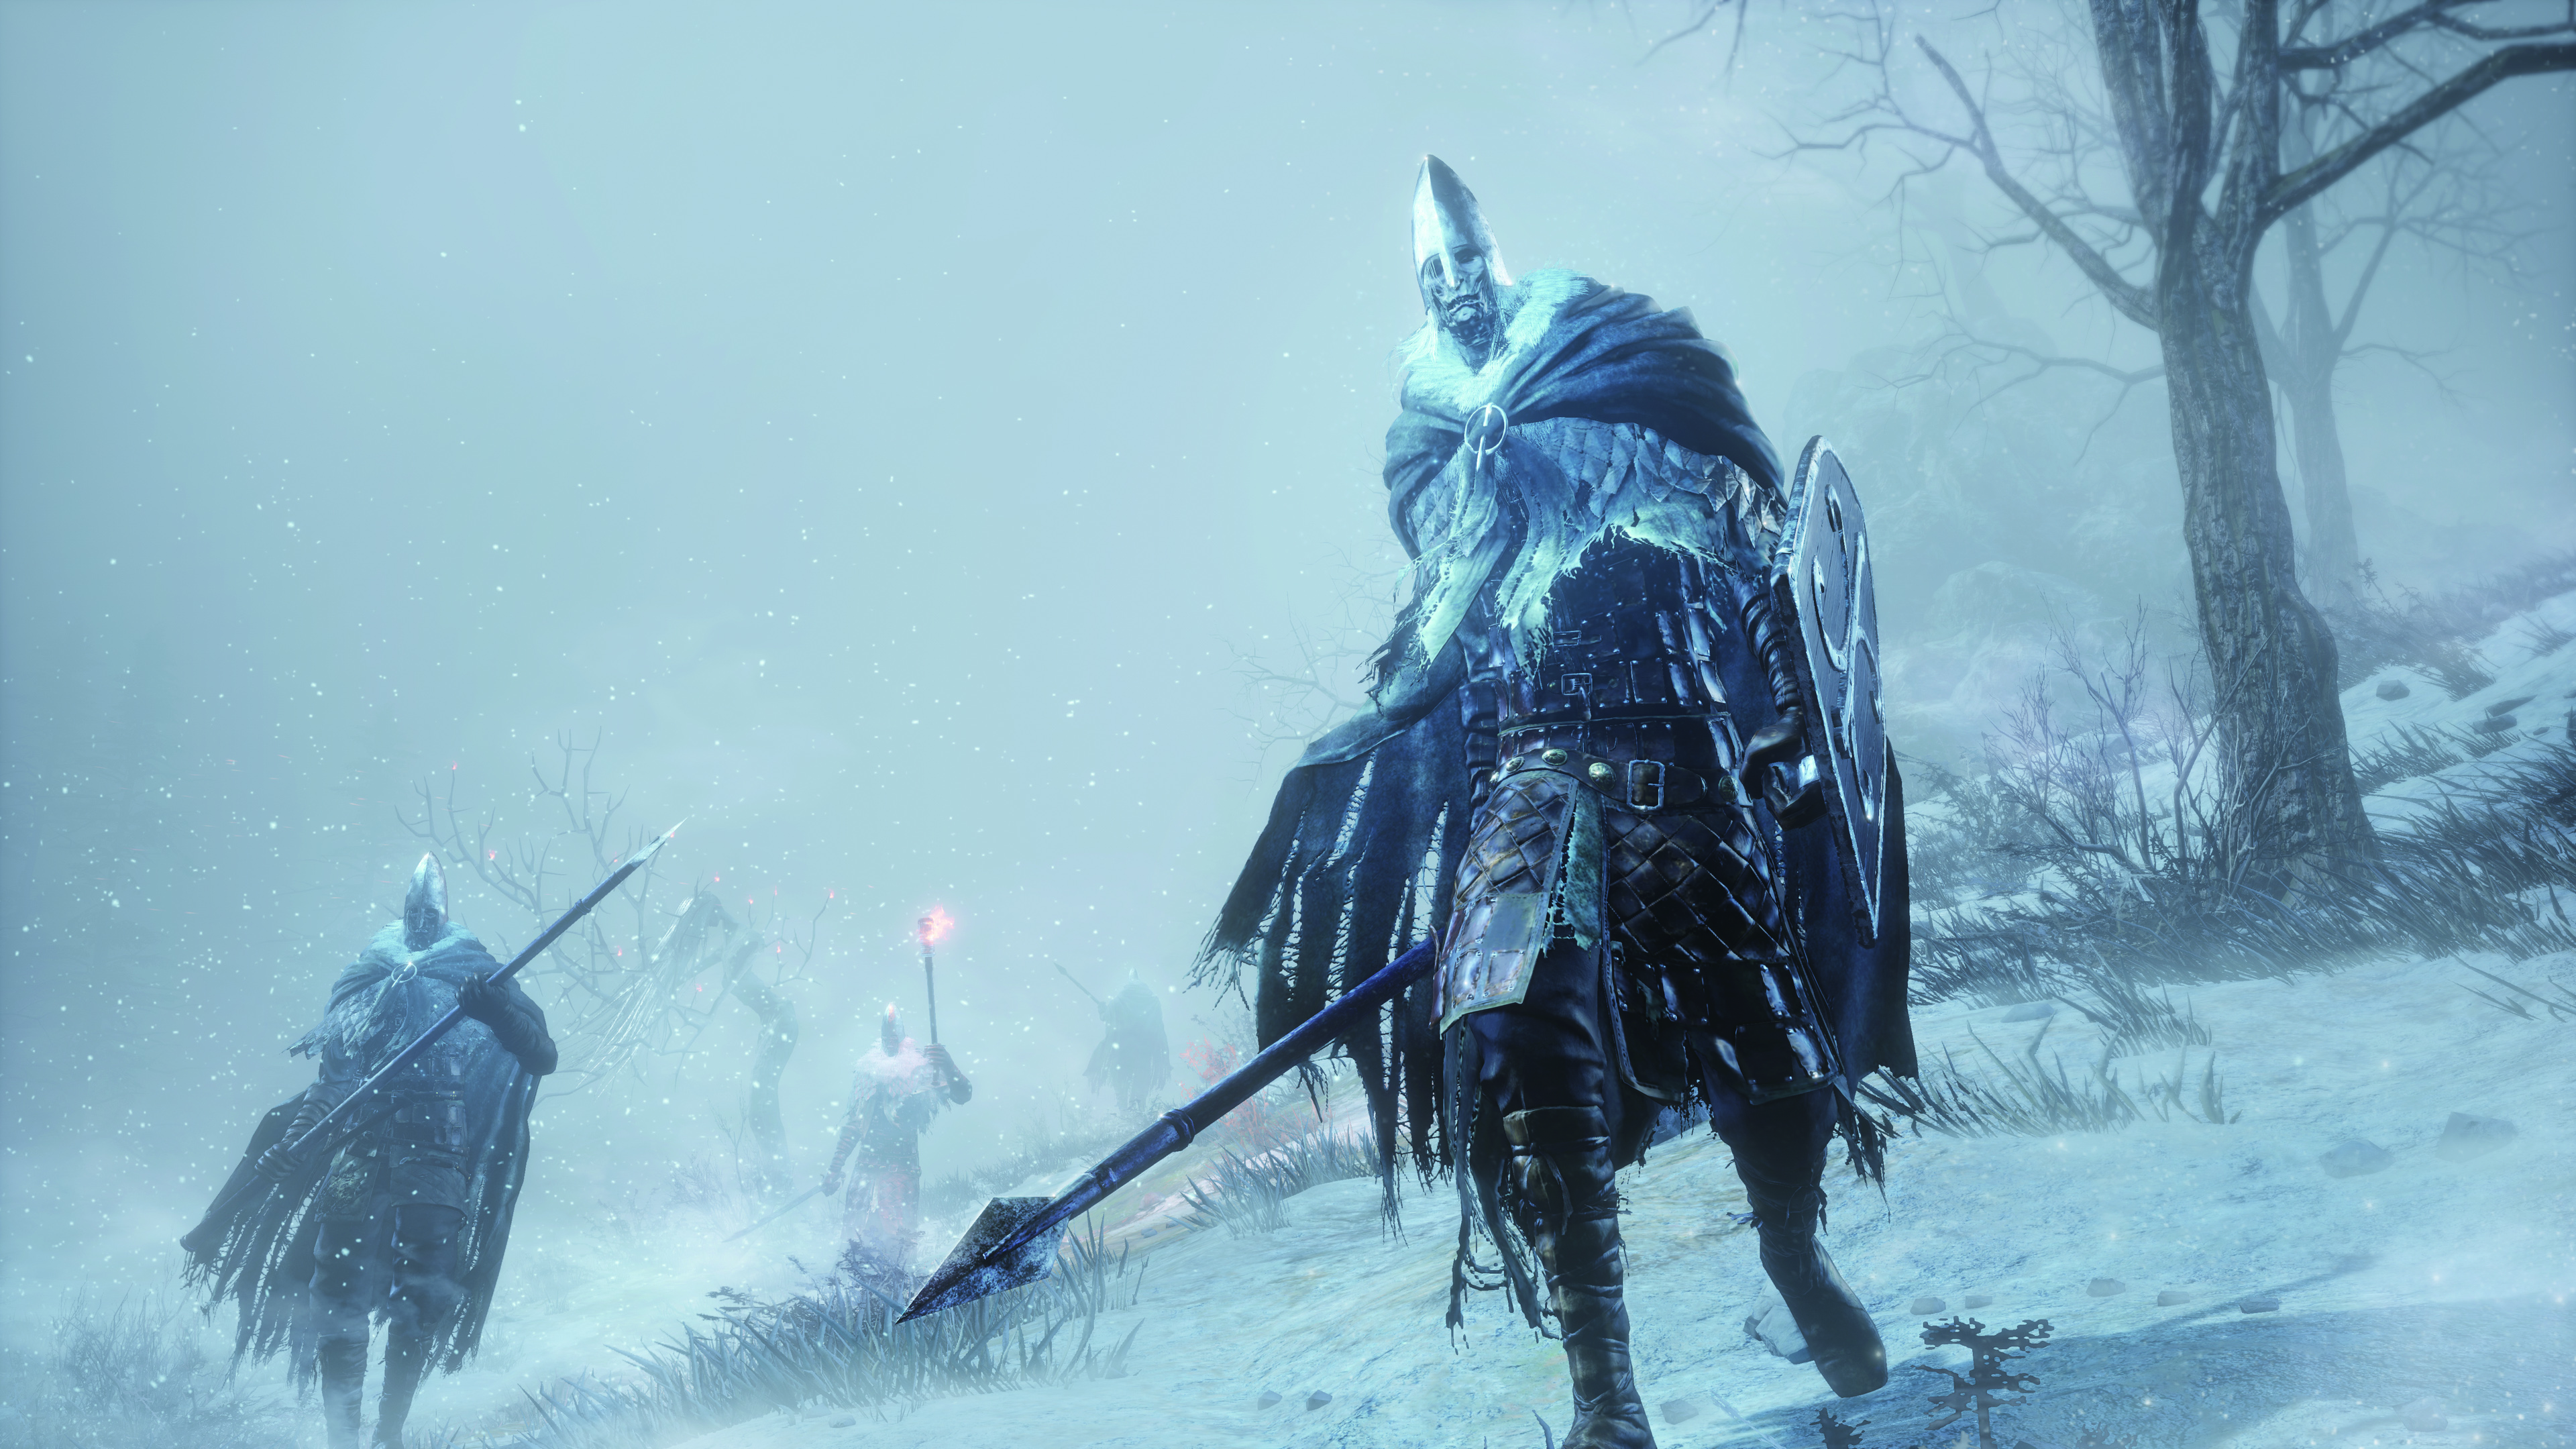 Dark Souls 3 DLC due early following console leak